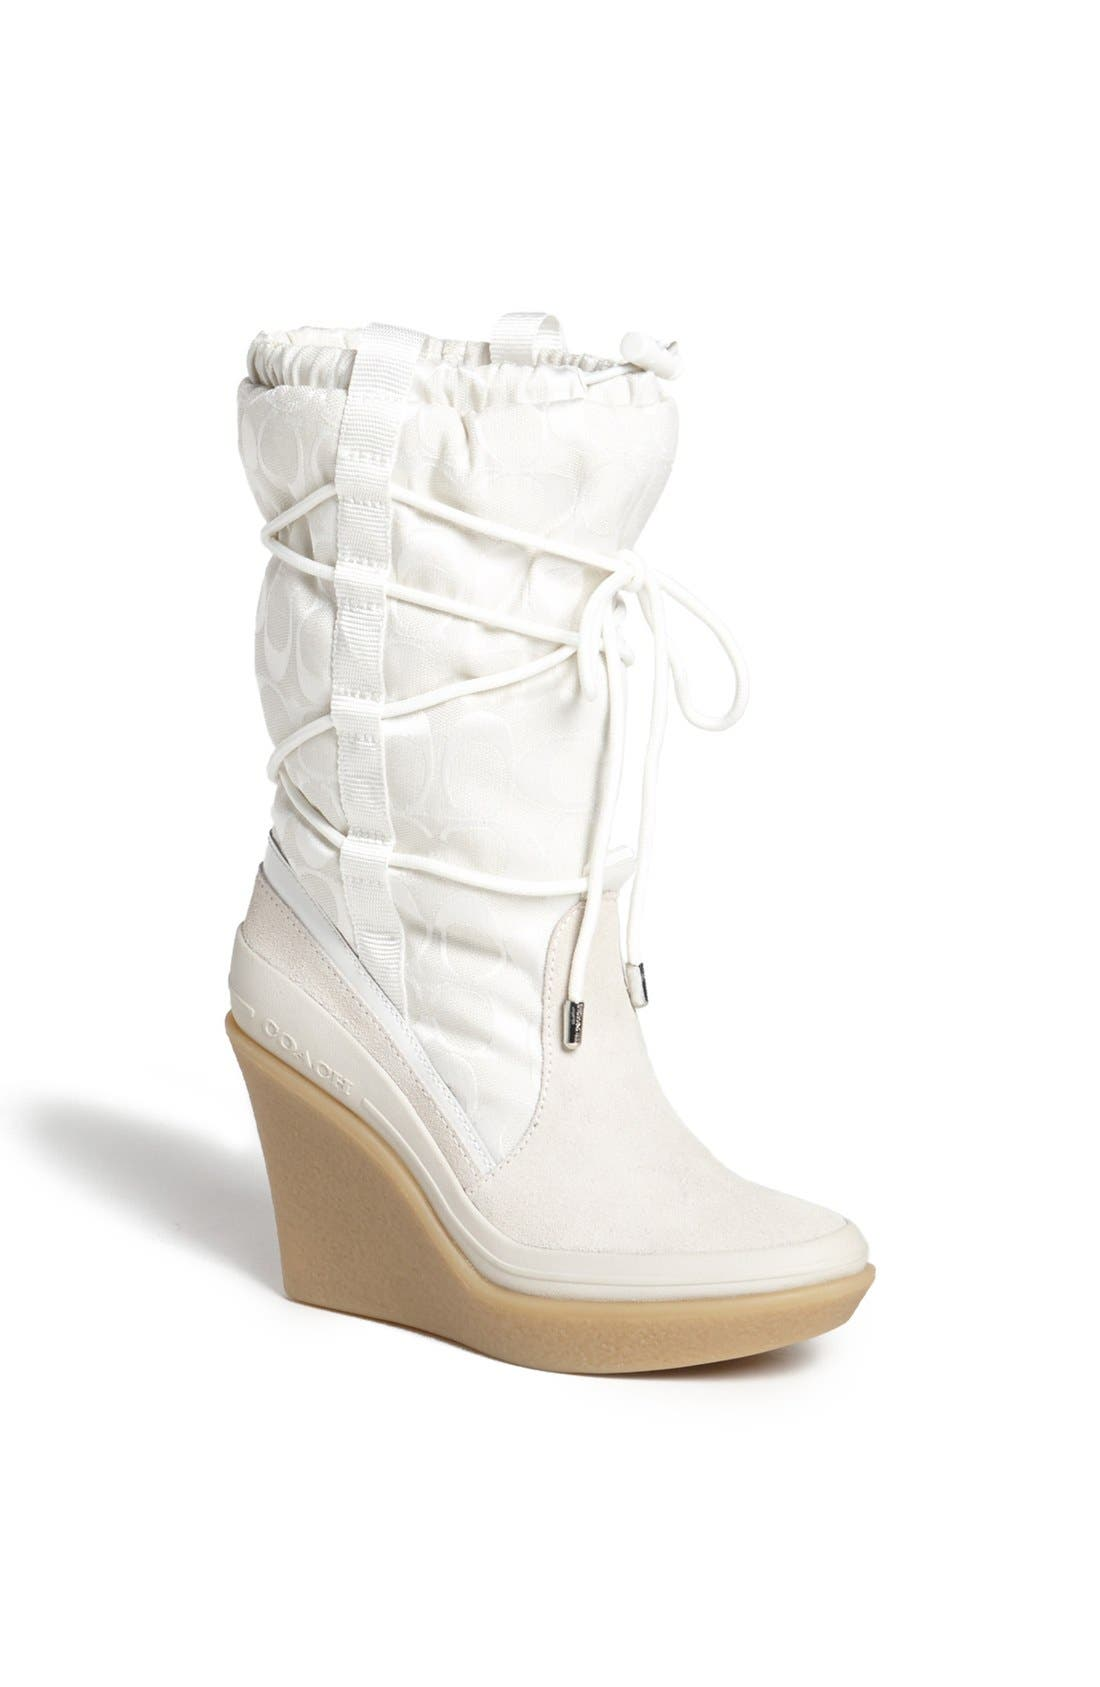 Alternate Image 1 Selected - COACH 'Wynfled' Boot